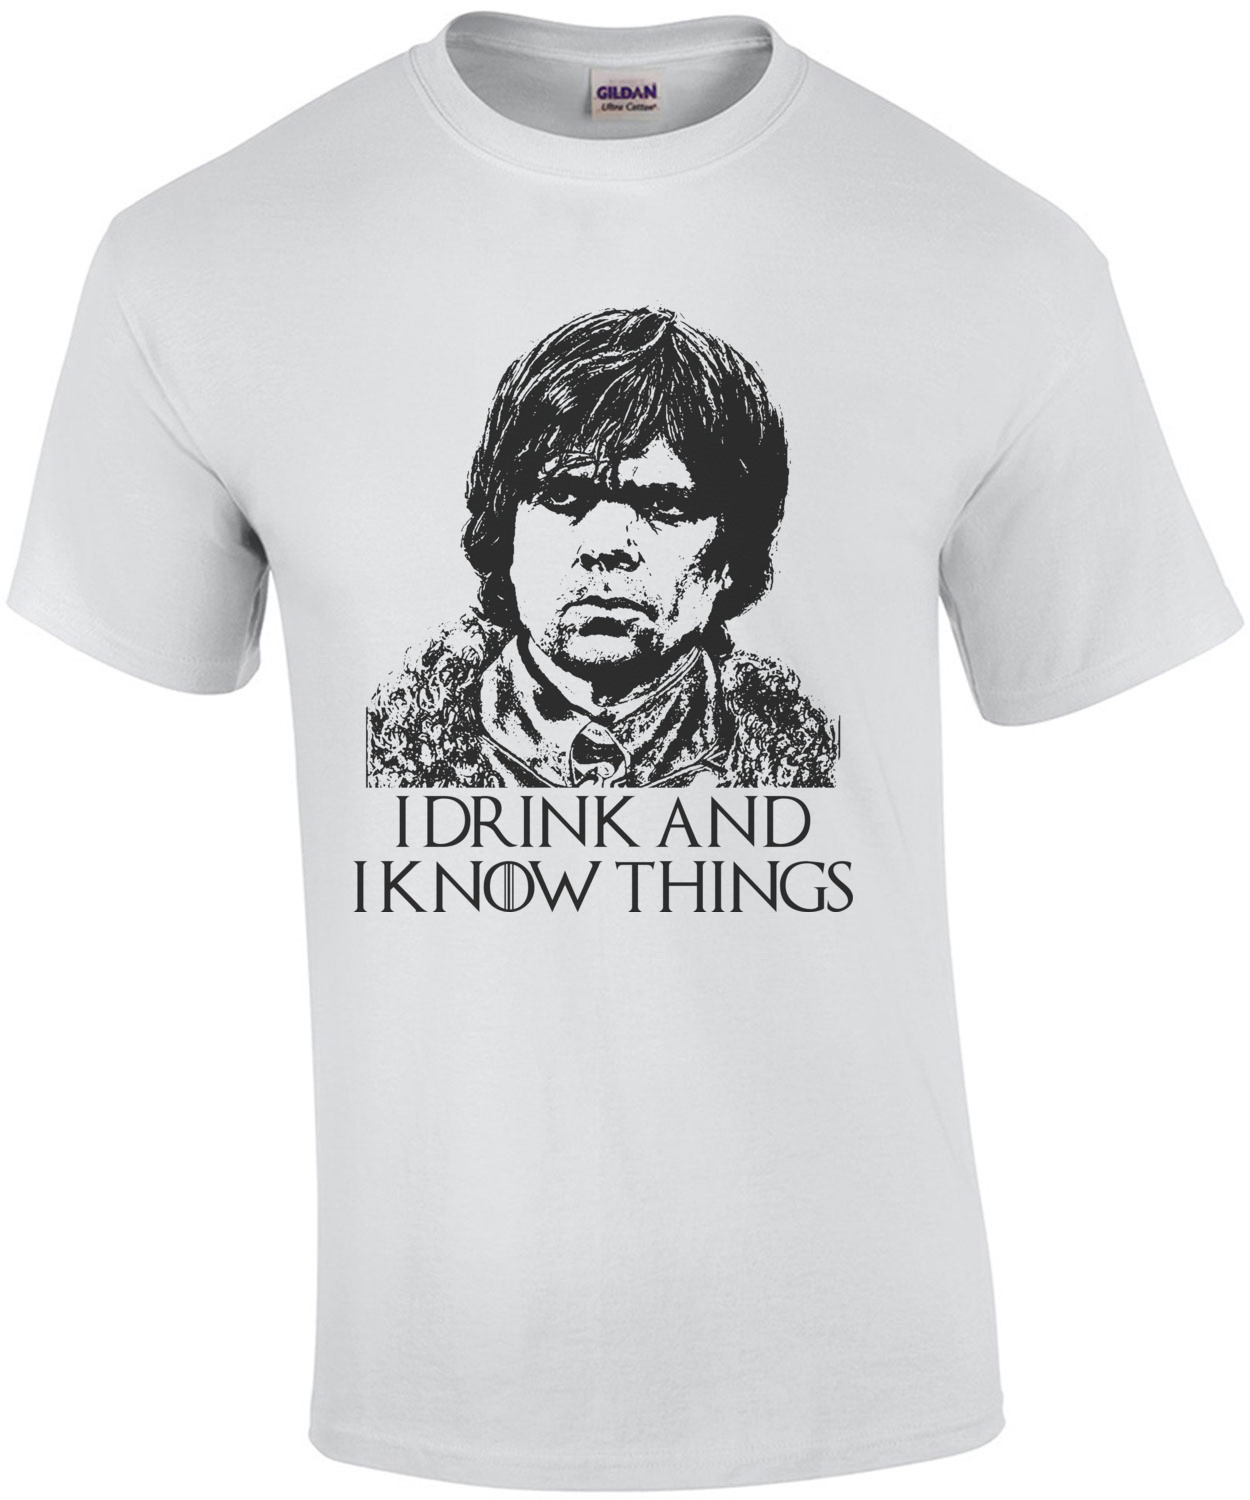 I Drink And I Know Things Tyrion Lannister Game of Thrones tee